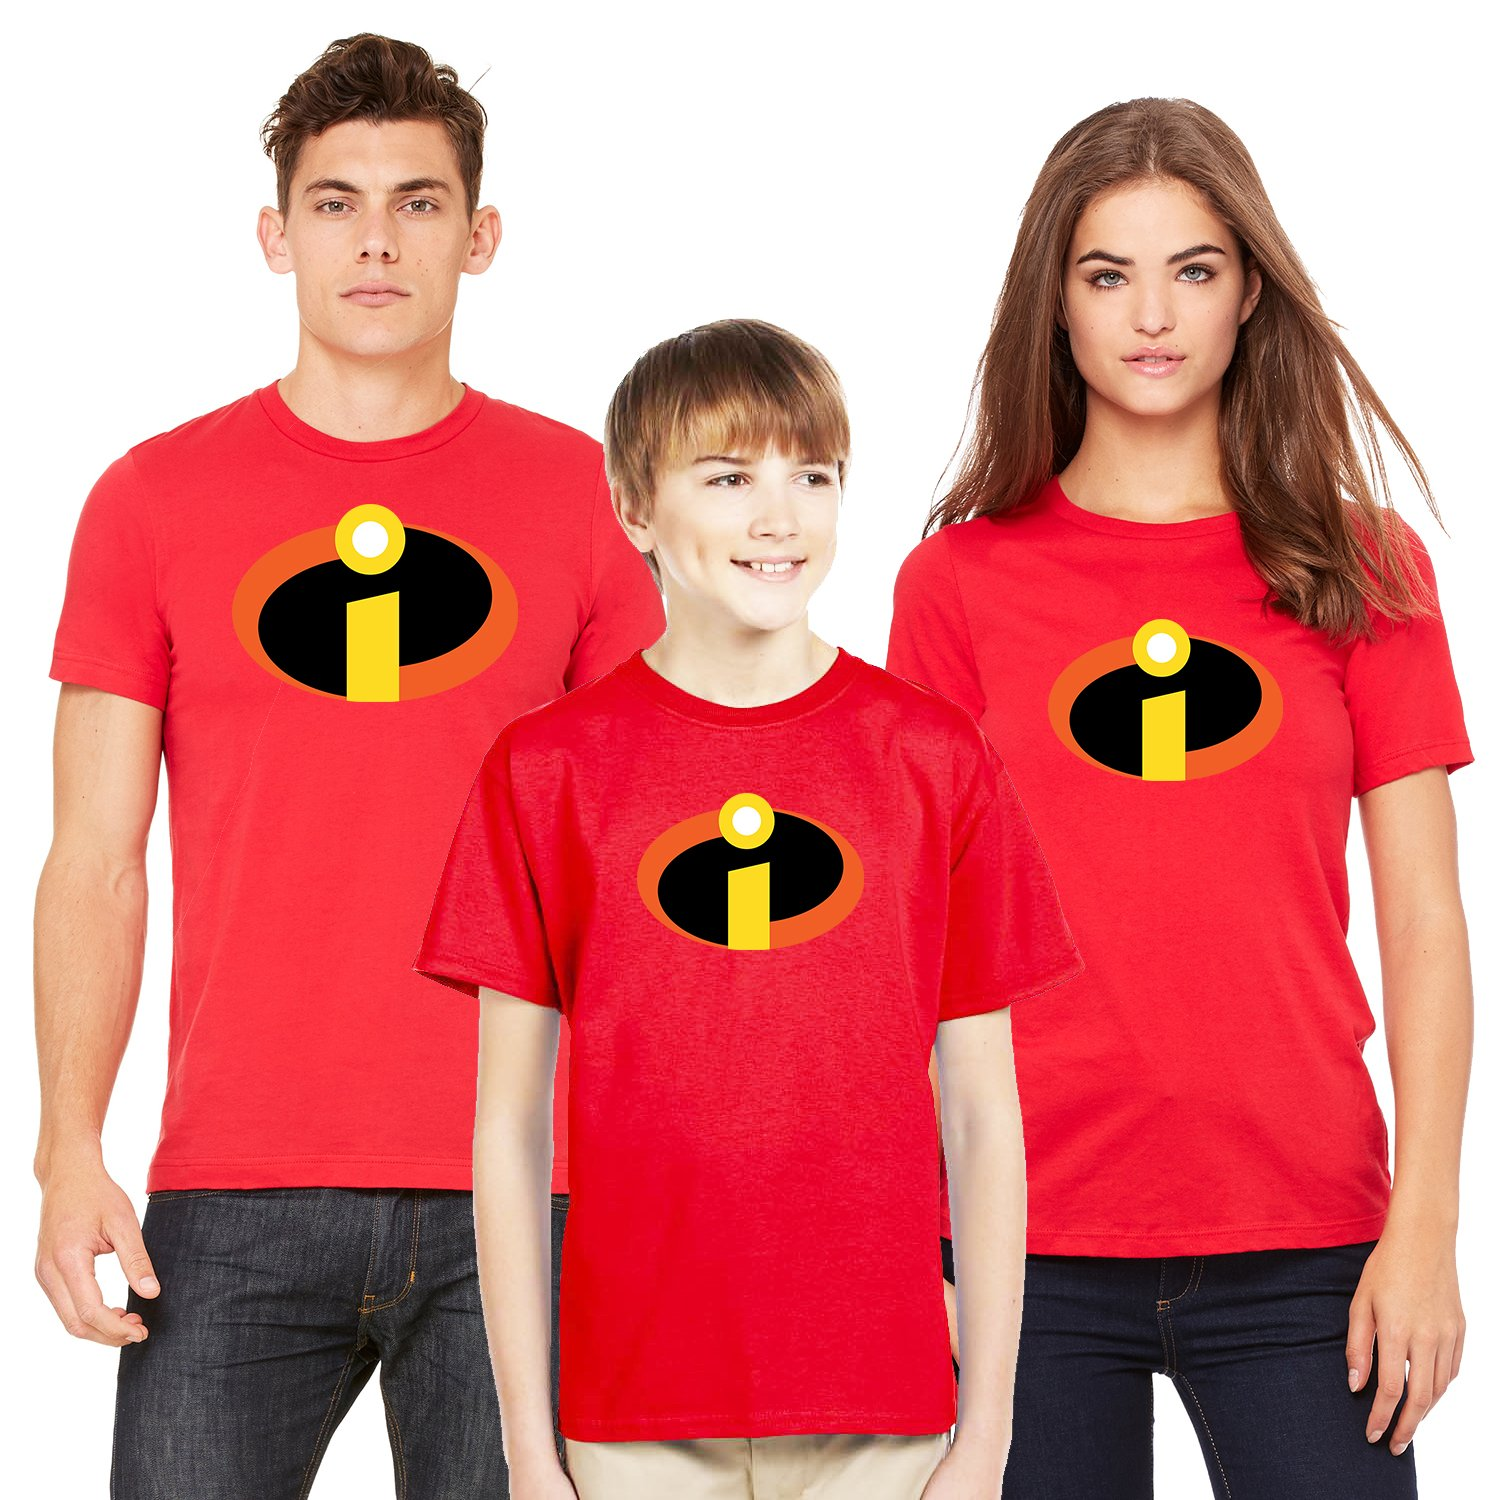 622569ef0 Amazon.com: The Incredibles T-Shirt Men Women Youth Family Disney Matching  (Sold Separately): Clothing